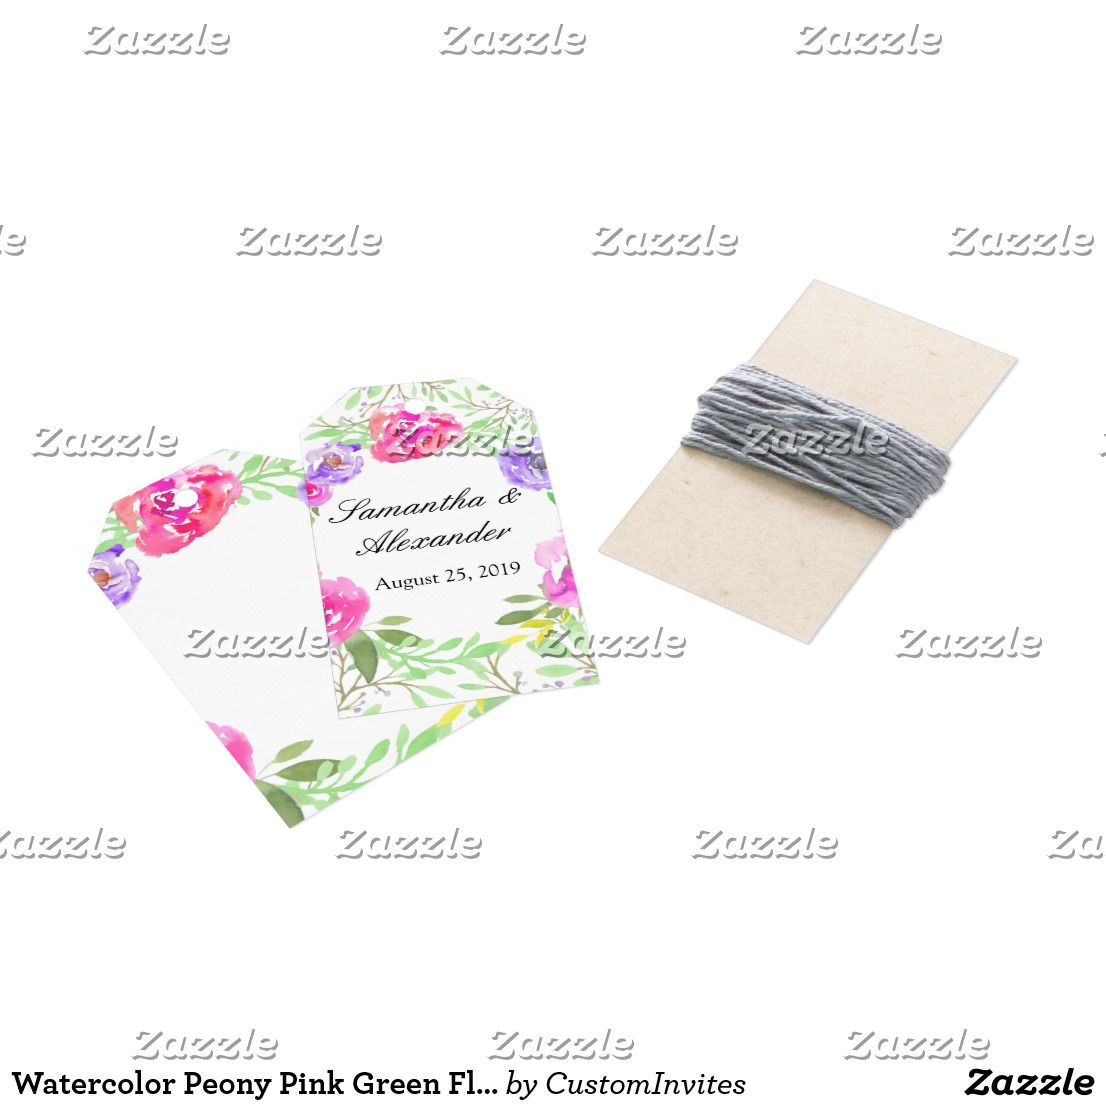 Watercolor Peony Pink Green Floral Wedding Gift Tags | Watercolors ...